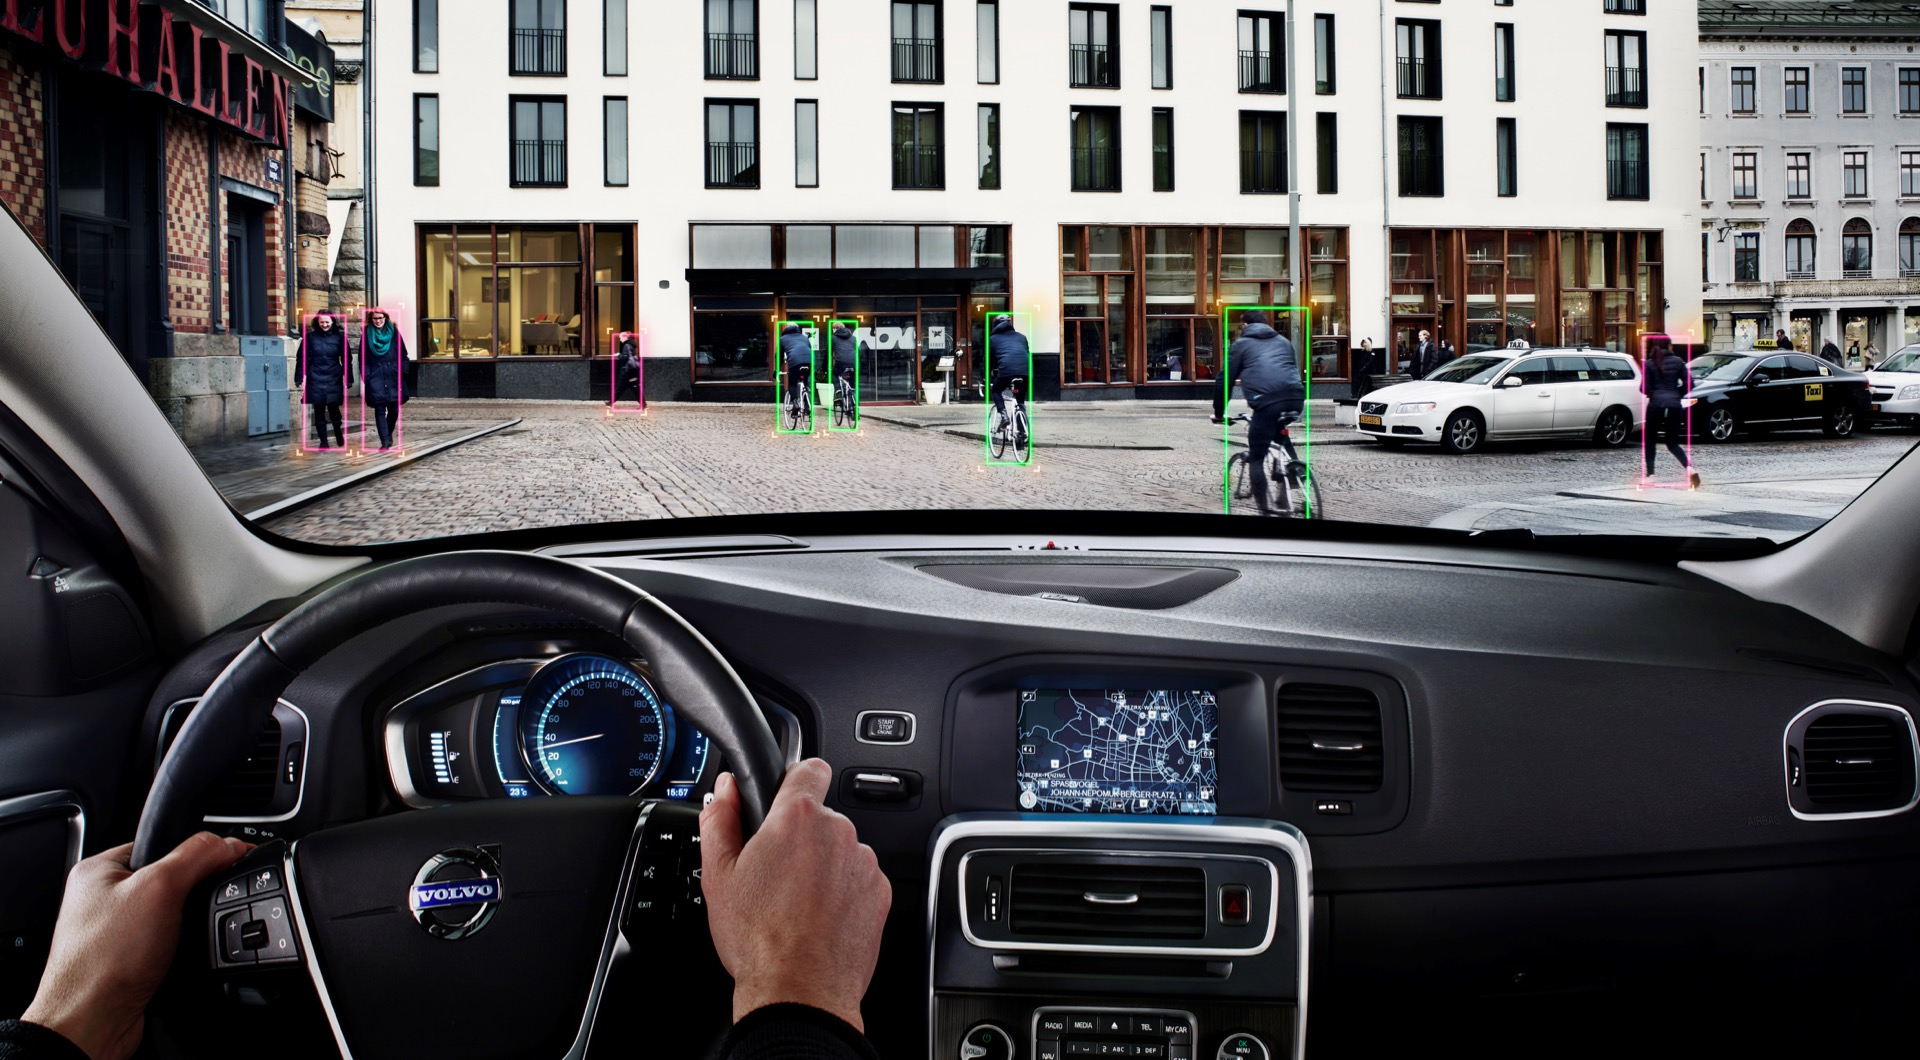 Pedestrian And Cyclist Detection With Full Auto Brake -  2013, 2014, Images, Other, S60, S80, Safety, Technology, V40, V60, V70, Volvo, XC60, XC70